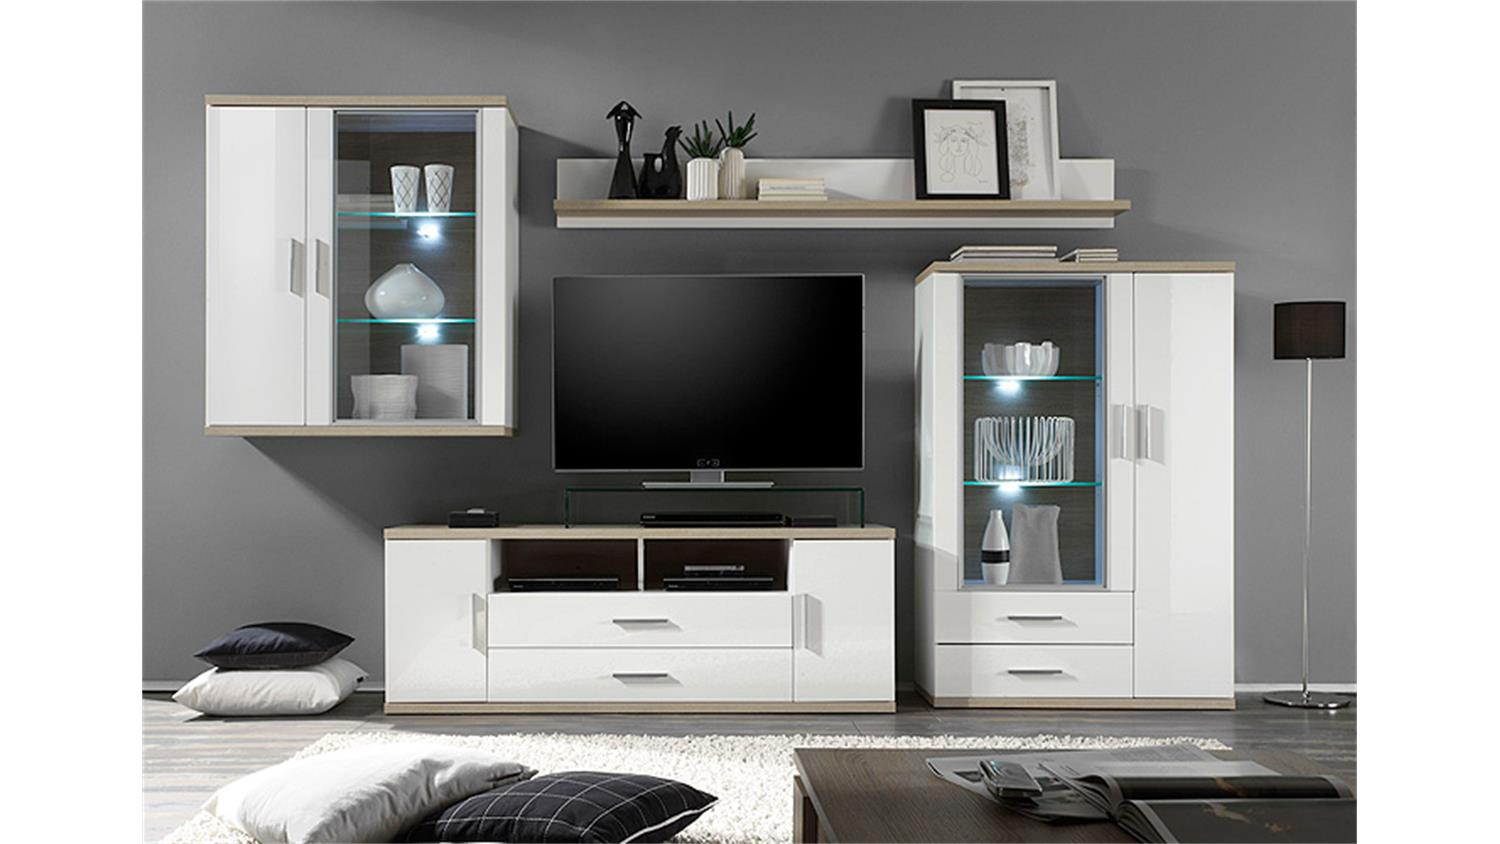 wohnwand 1 arena wei hochglanz eiche s gerau inkl led. Black Bedroom Furniture Sets. Home Design Ideas